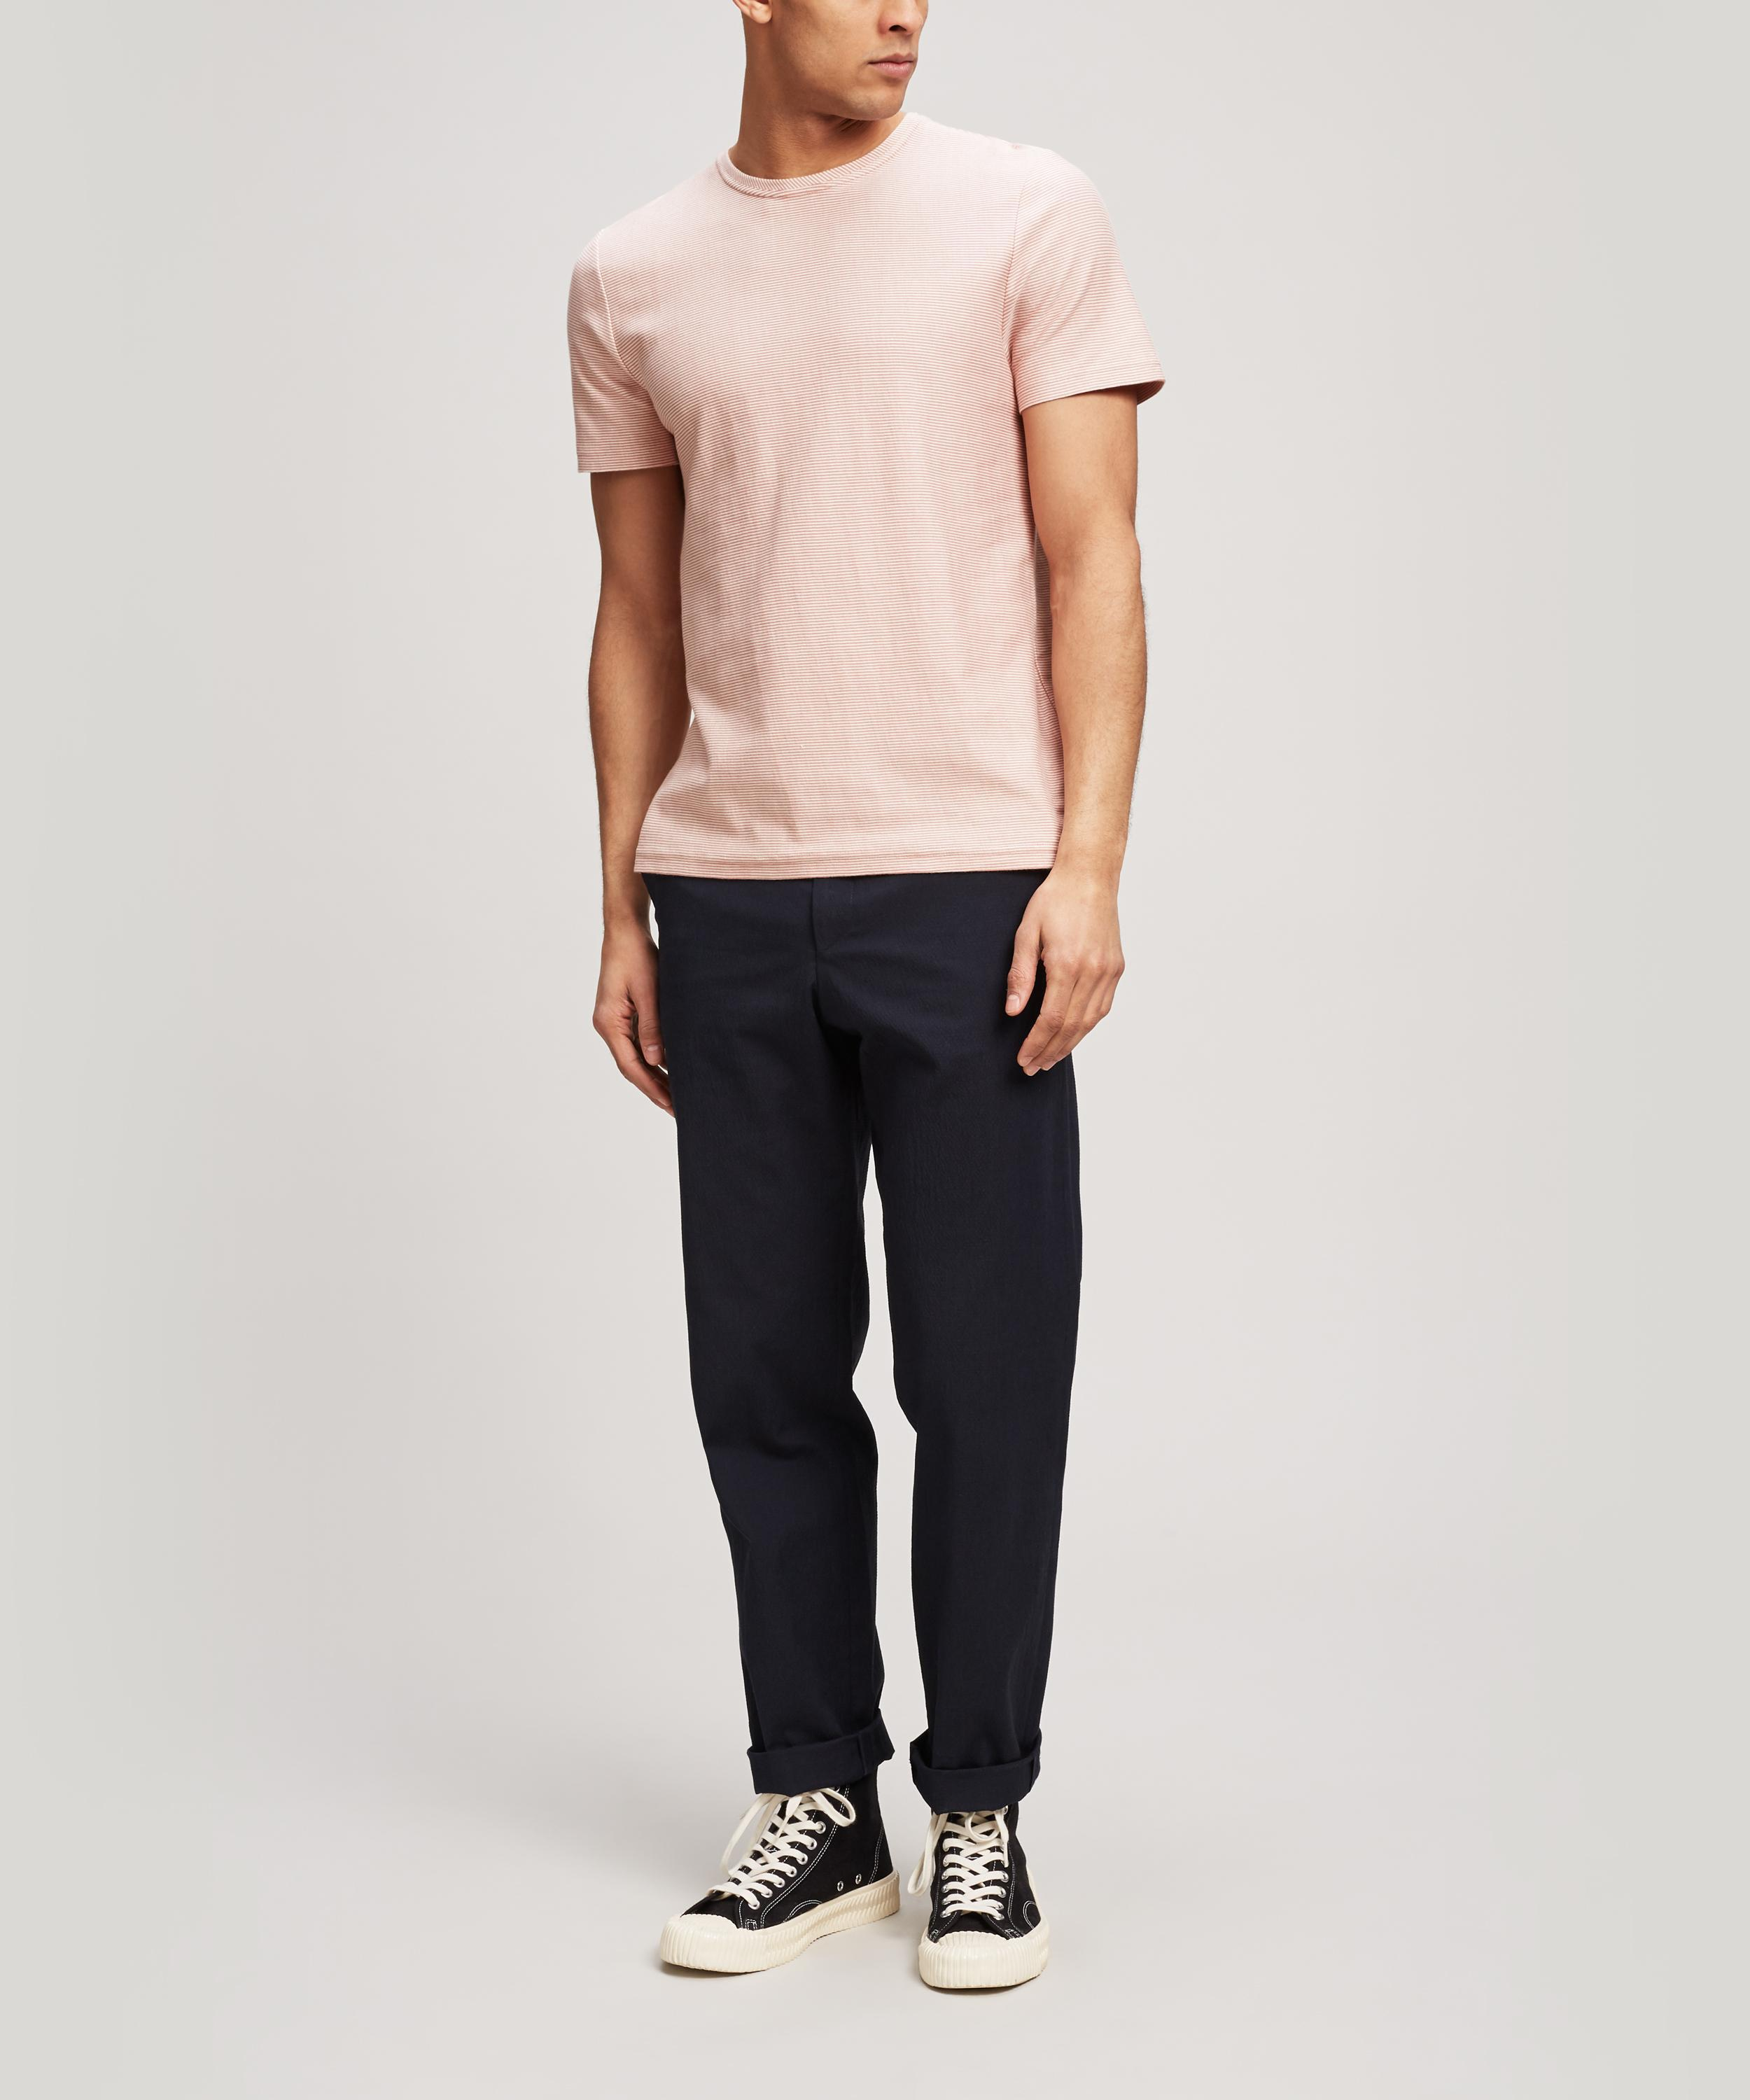 Oliver Spencer Conduit Micro Stripe T-shirt in Pink for Men